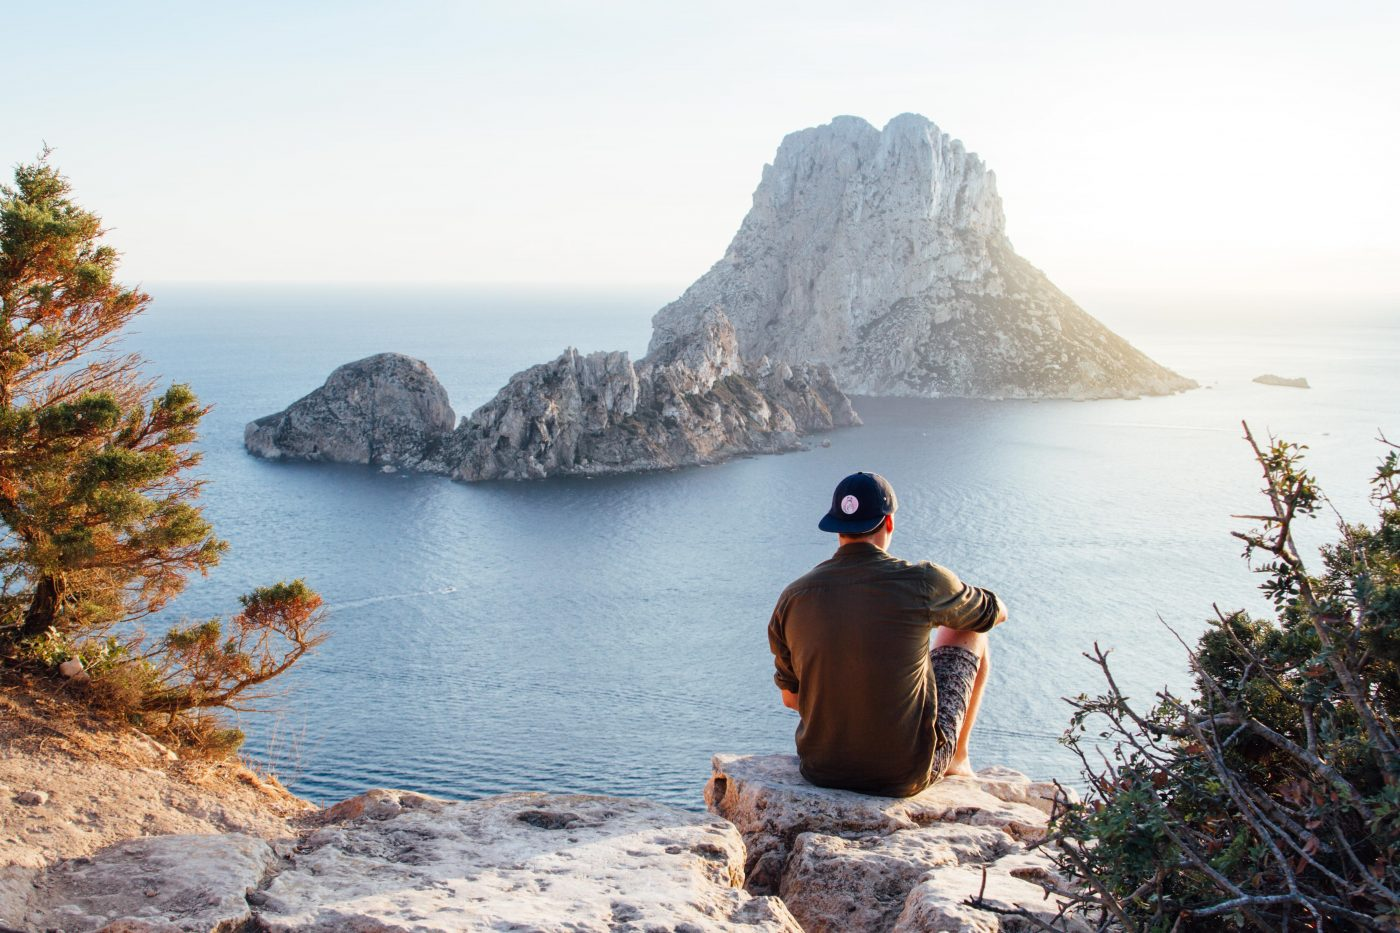 me time during a couples trip: man sitting on a rock overlooking the sea